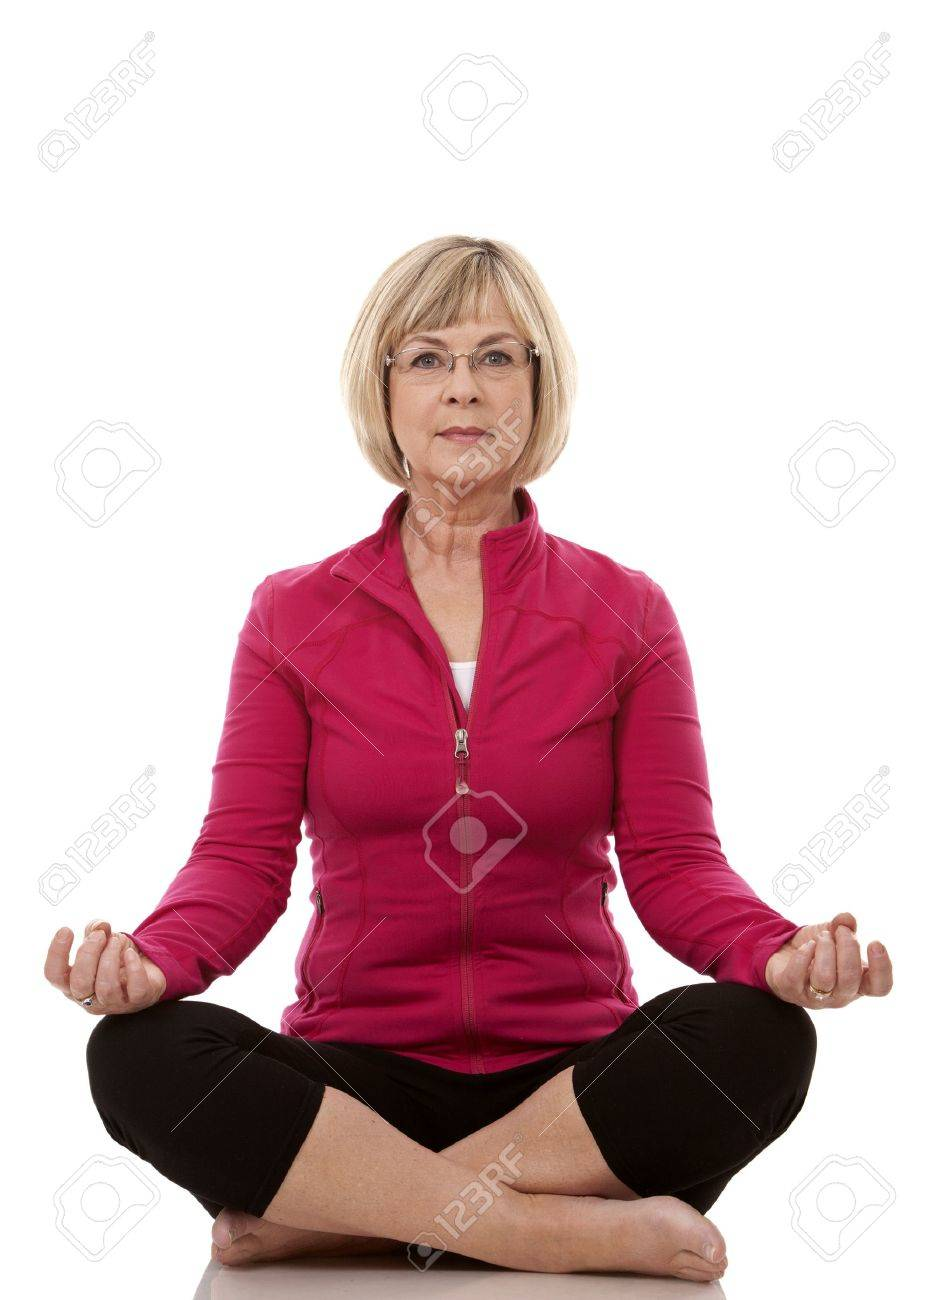 mature woman wearing fitness outfit on white isolated background - 17892793